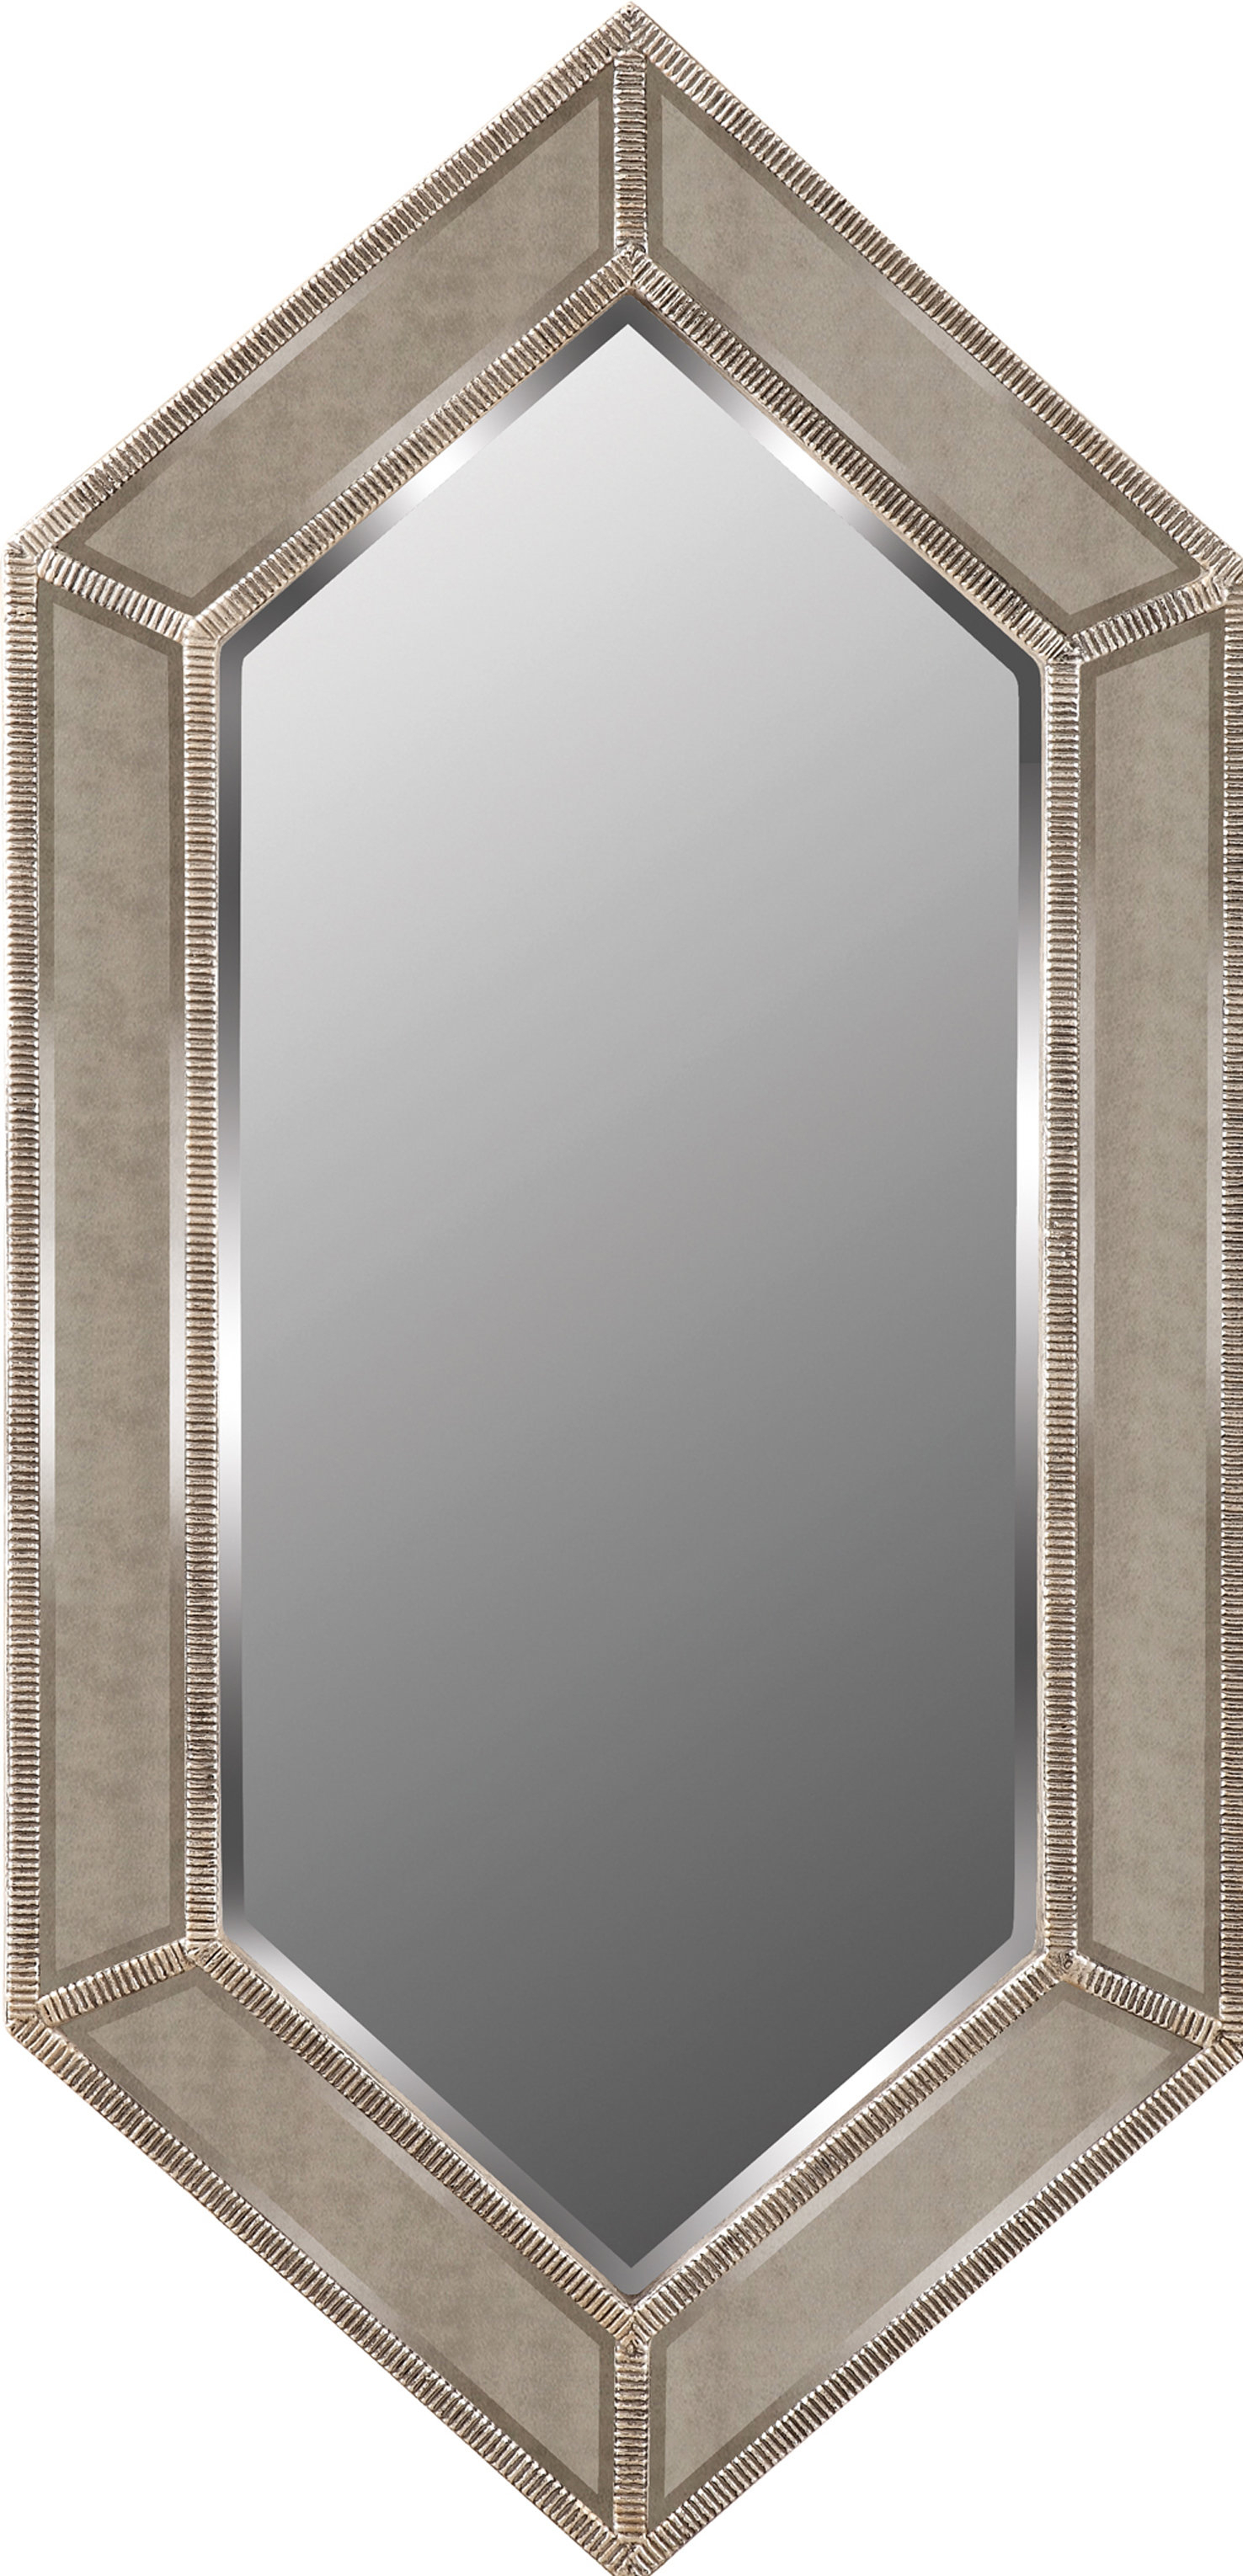 Galaxy Home Decoration Beaded Milton Accent Wall Mirror Within Beaded Accent Wall Mirrors (View 12 of 30)